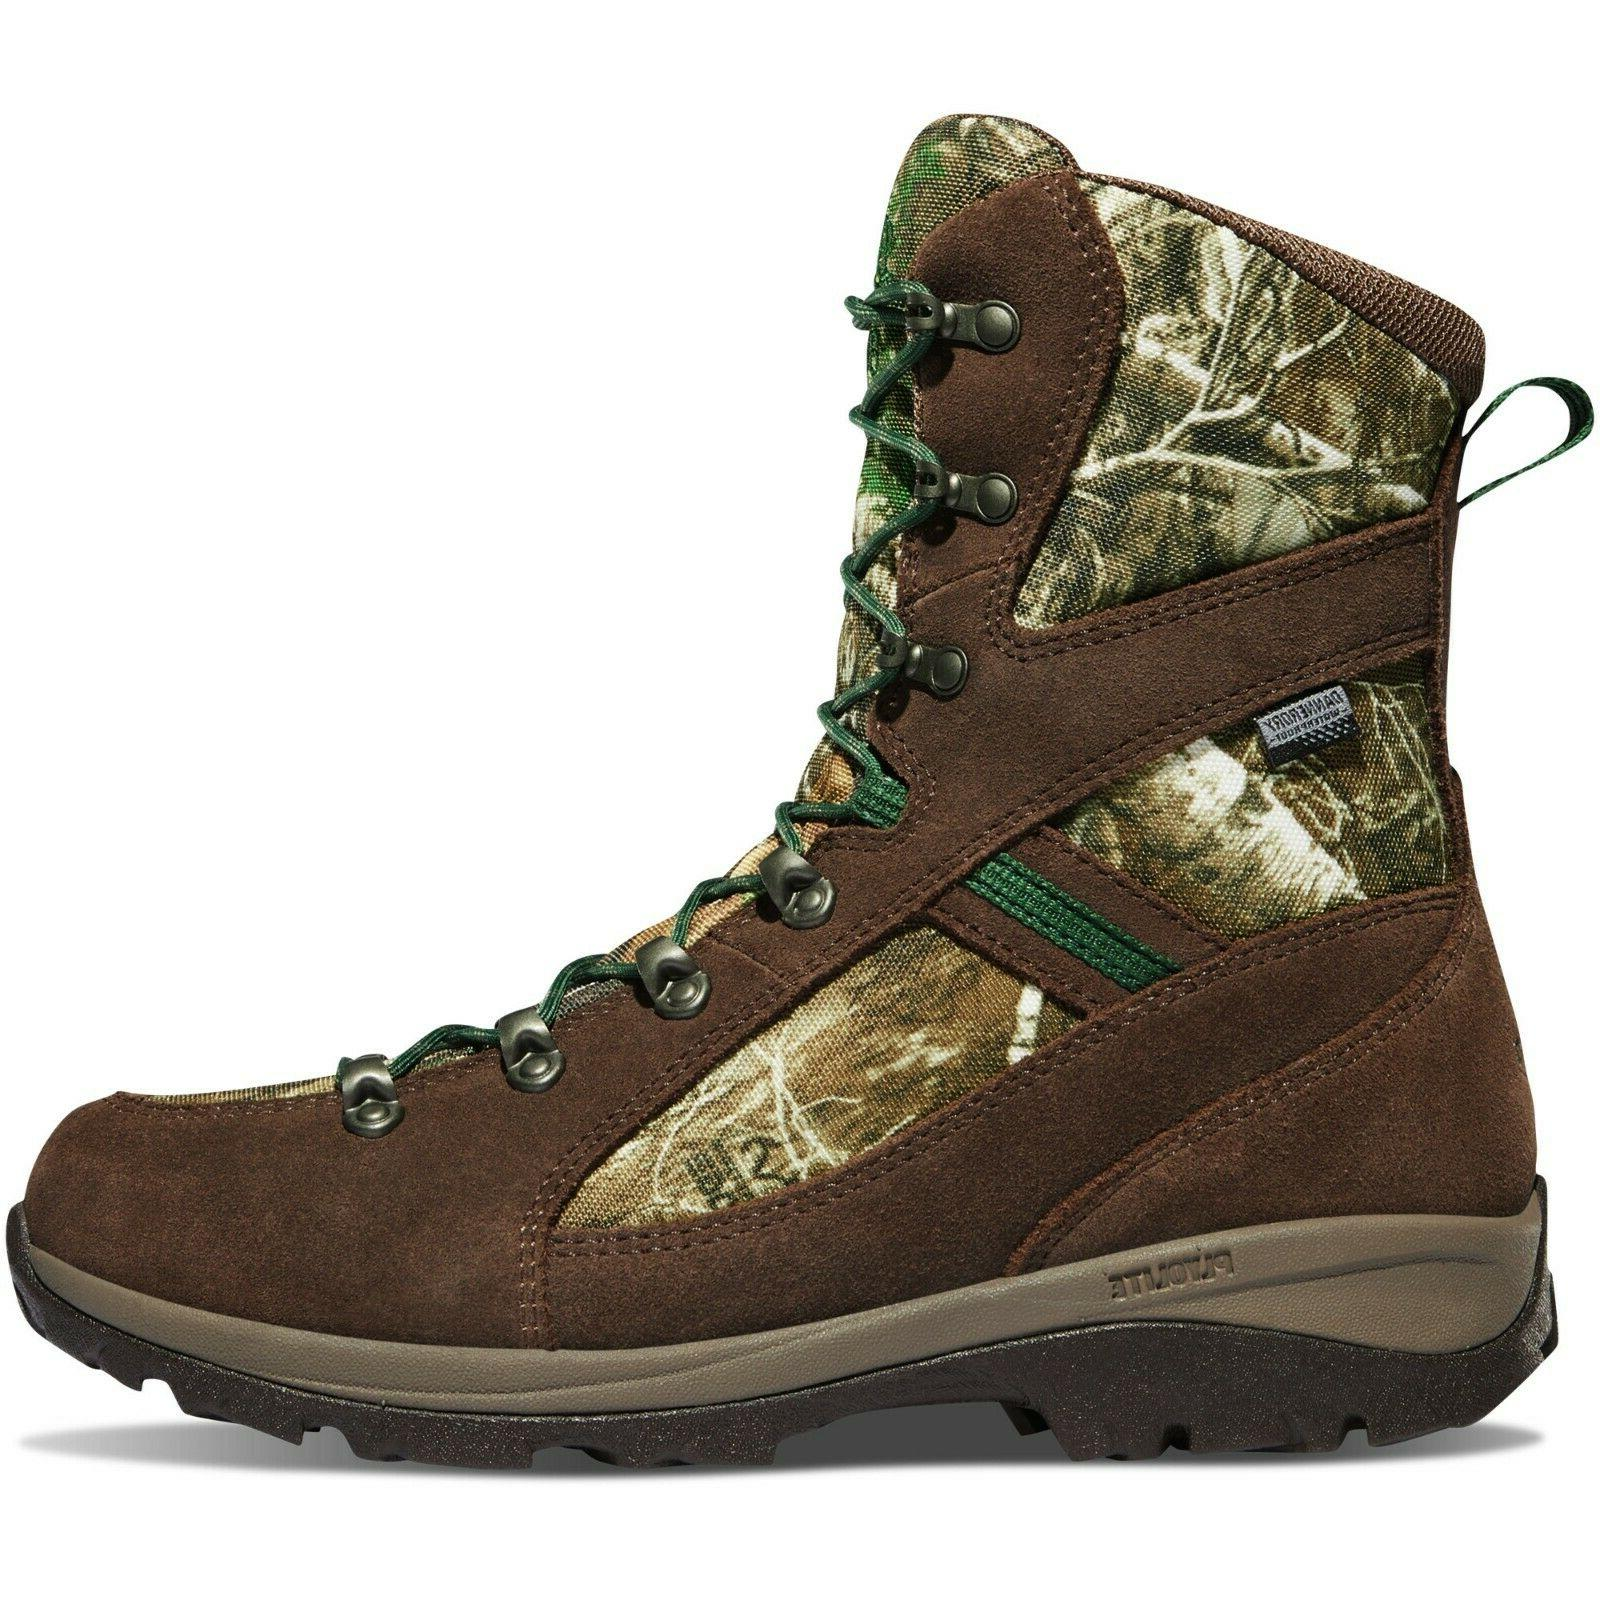 Danner Shoes Hunting